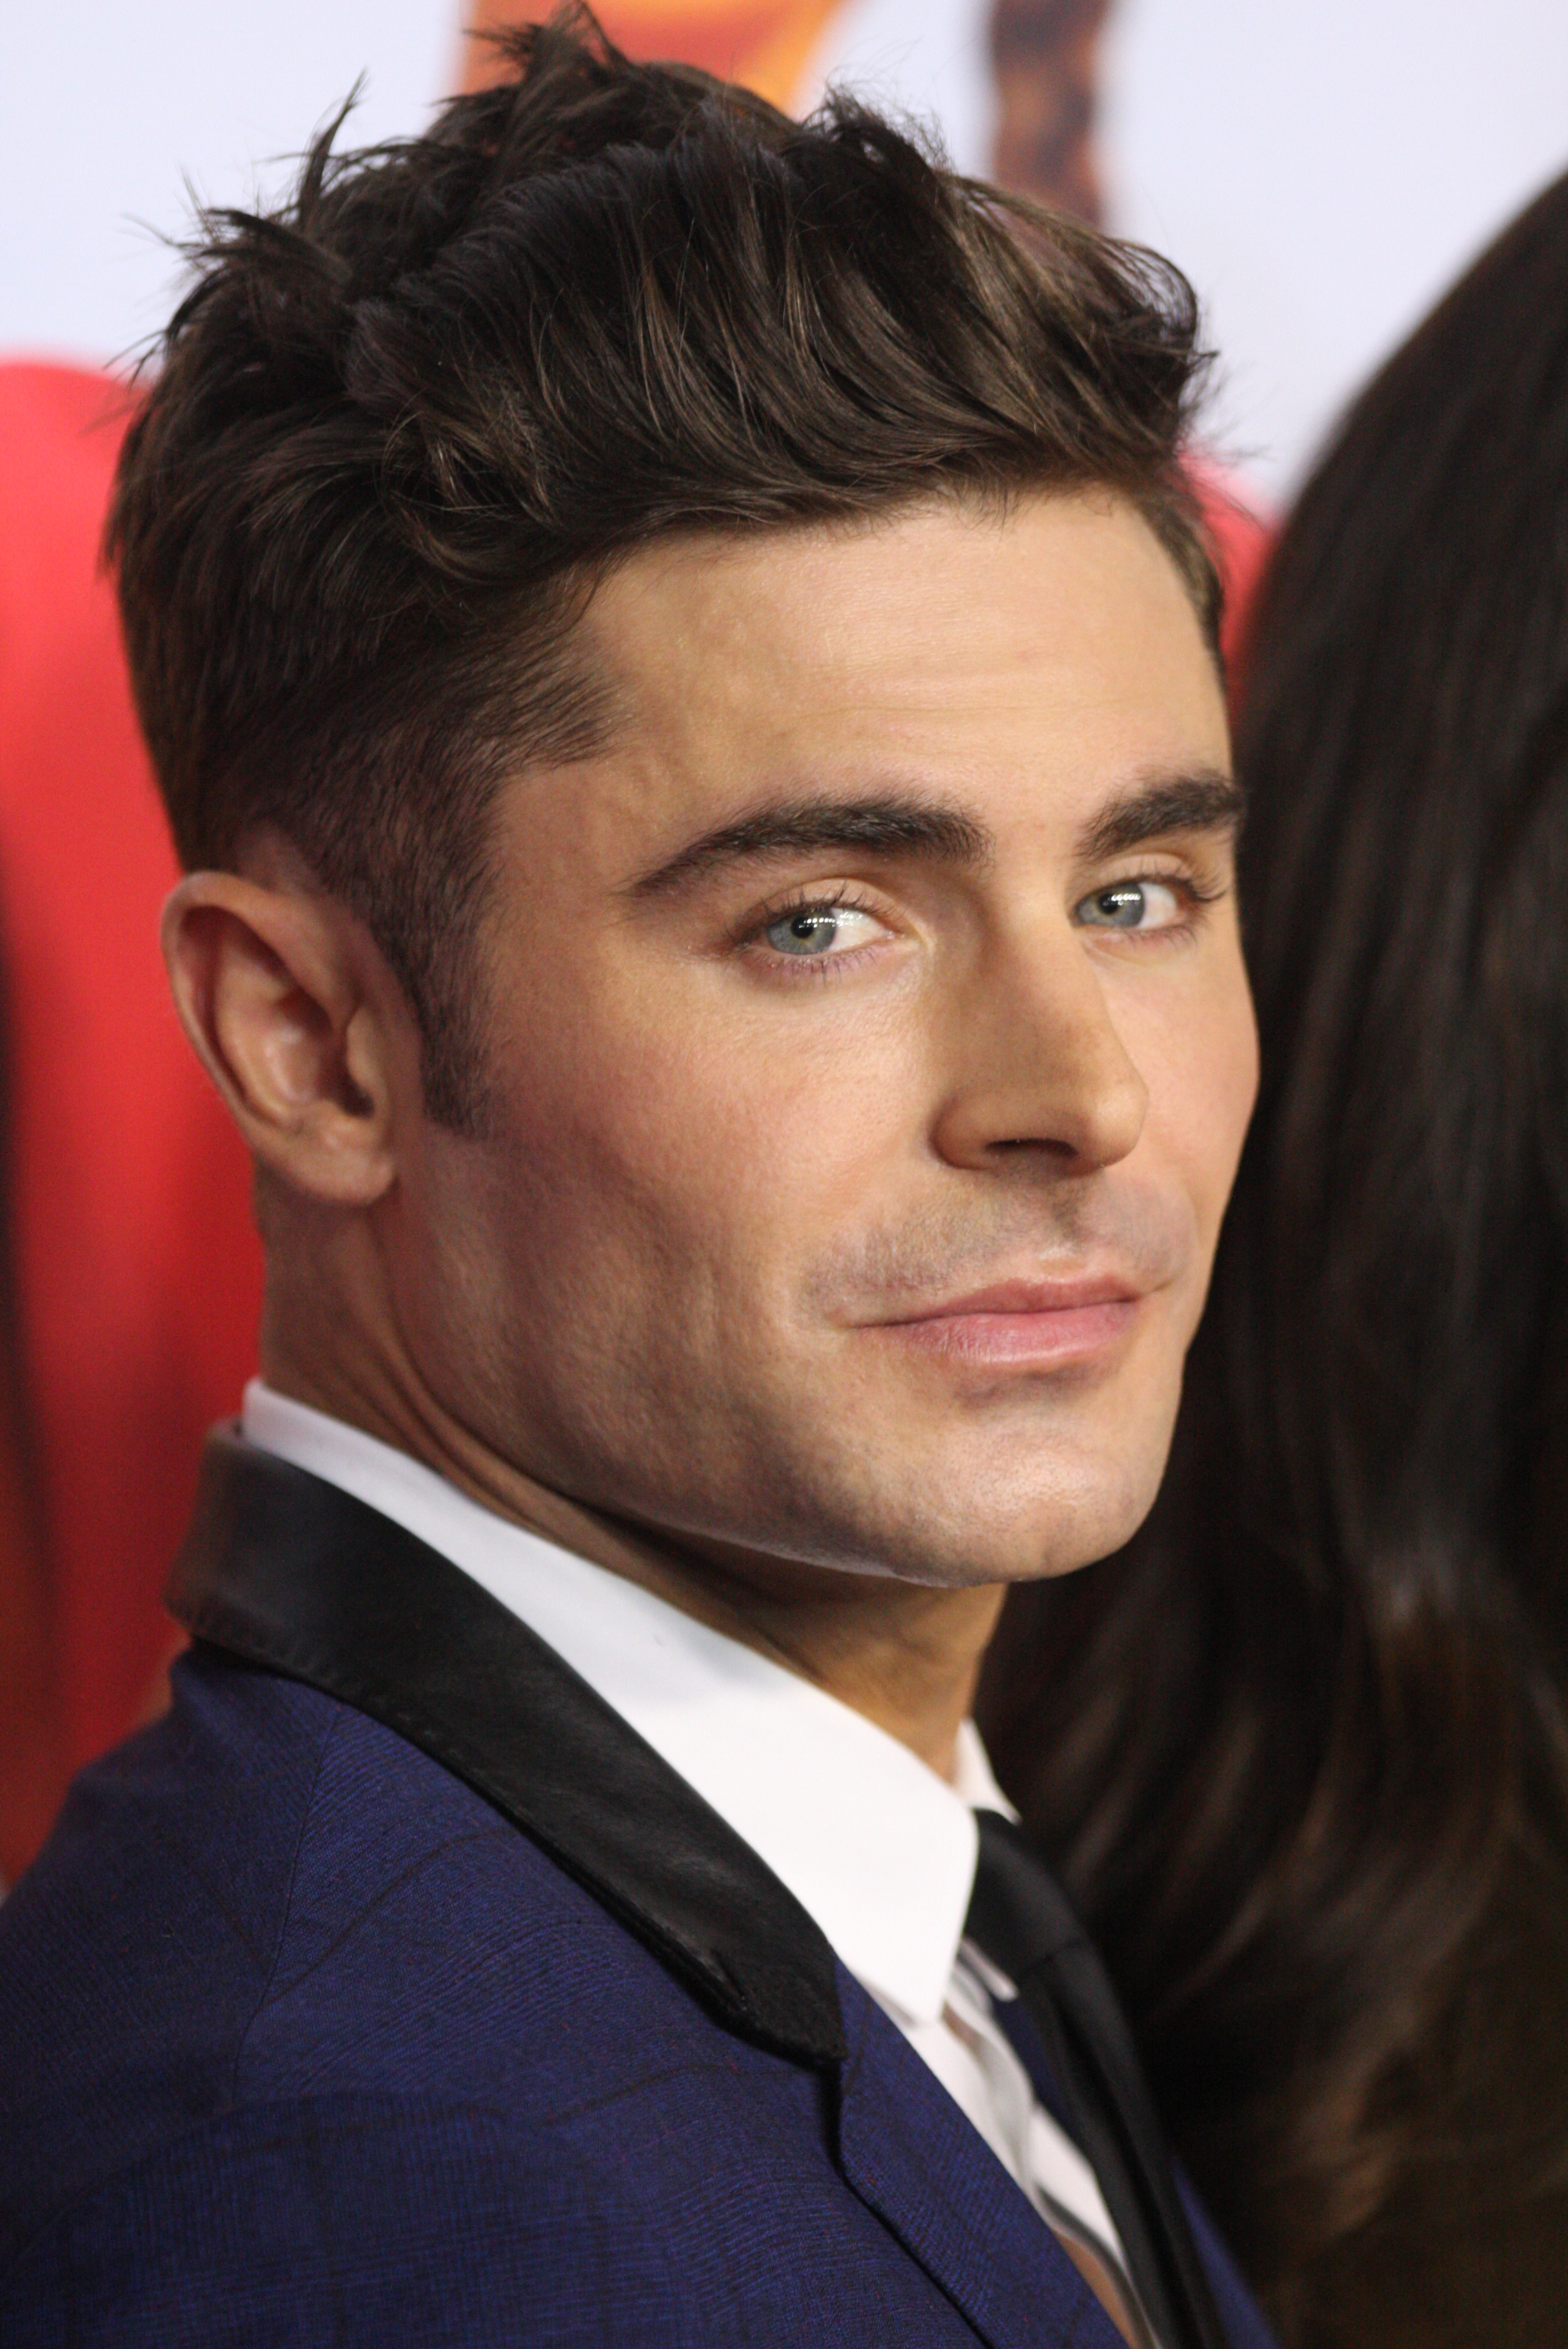 The 33-year old son of father David and mother Starla Baskett Efron Zac Efron in 2020 photo. Zac Efron earned a  million dollar salary - leaving the net worth at 18 million in 2020